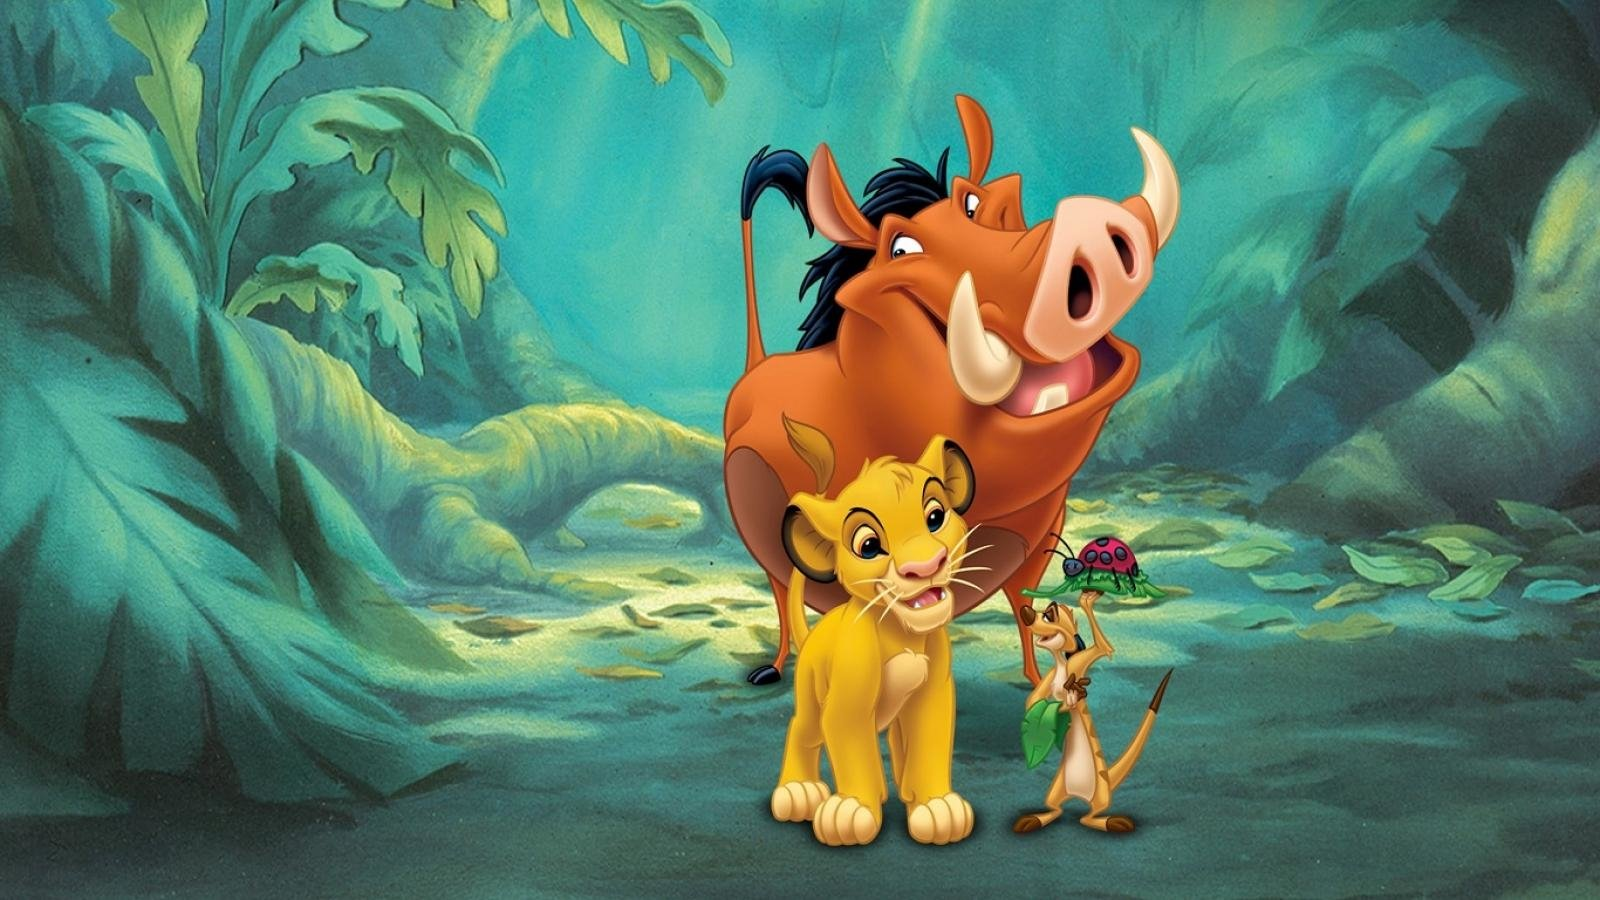 85 The Lion King HD Wallpapers | Backgrounds - Wallpaper Abyss